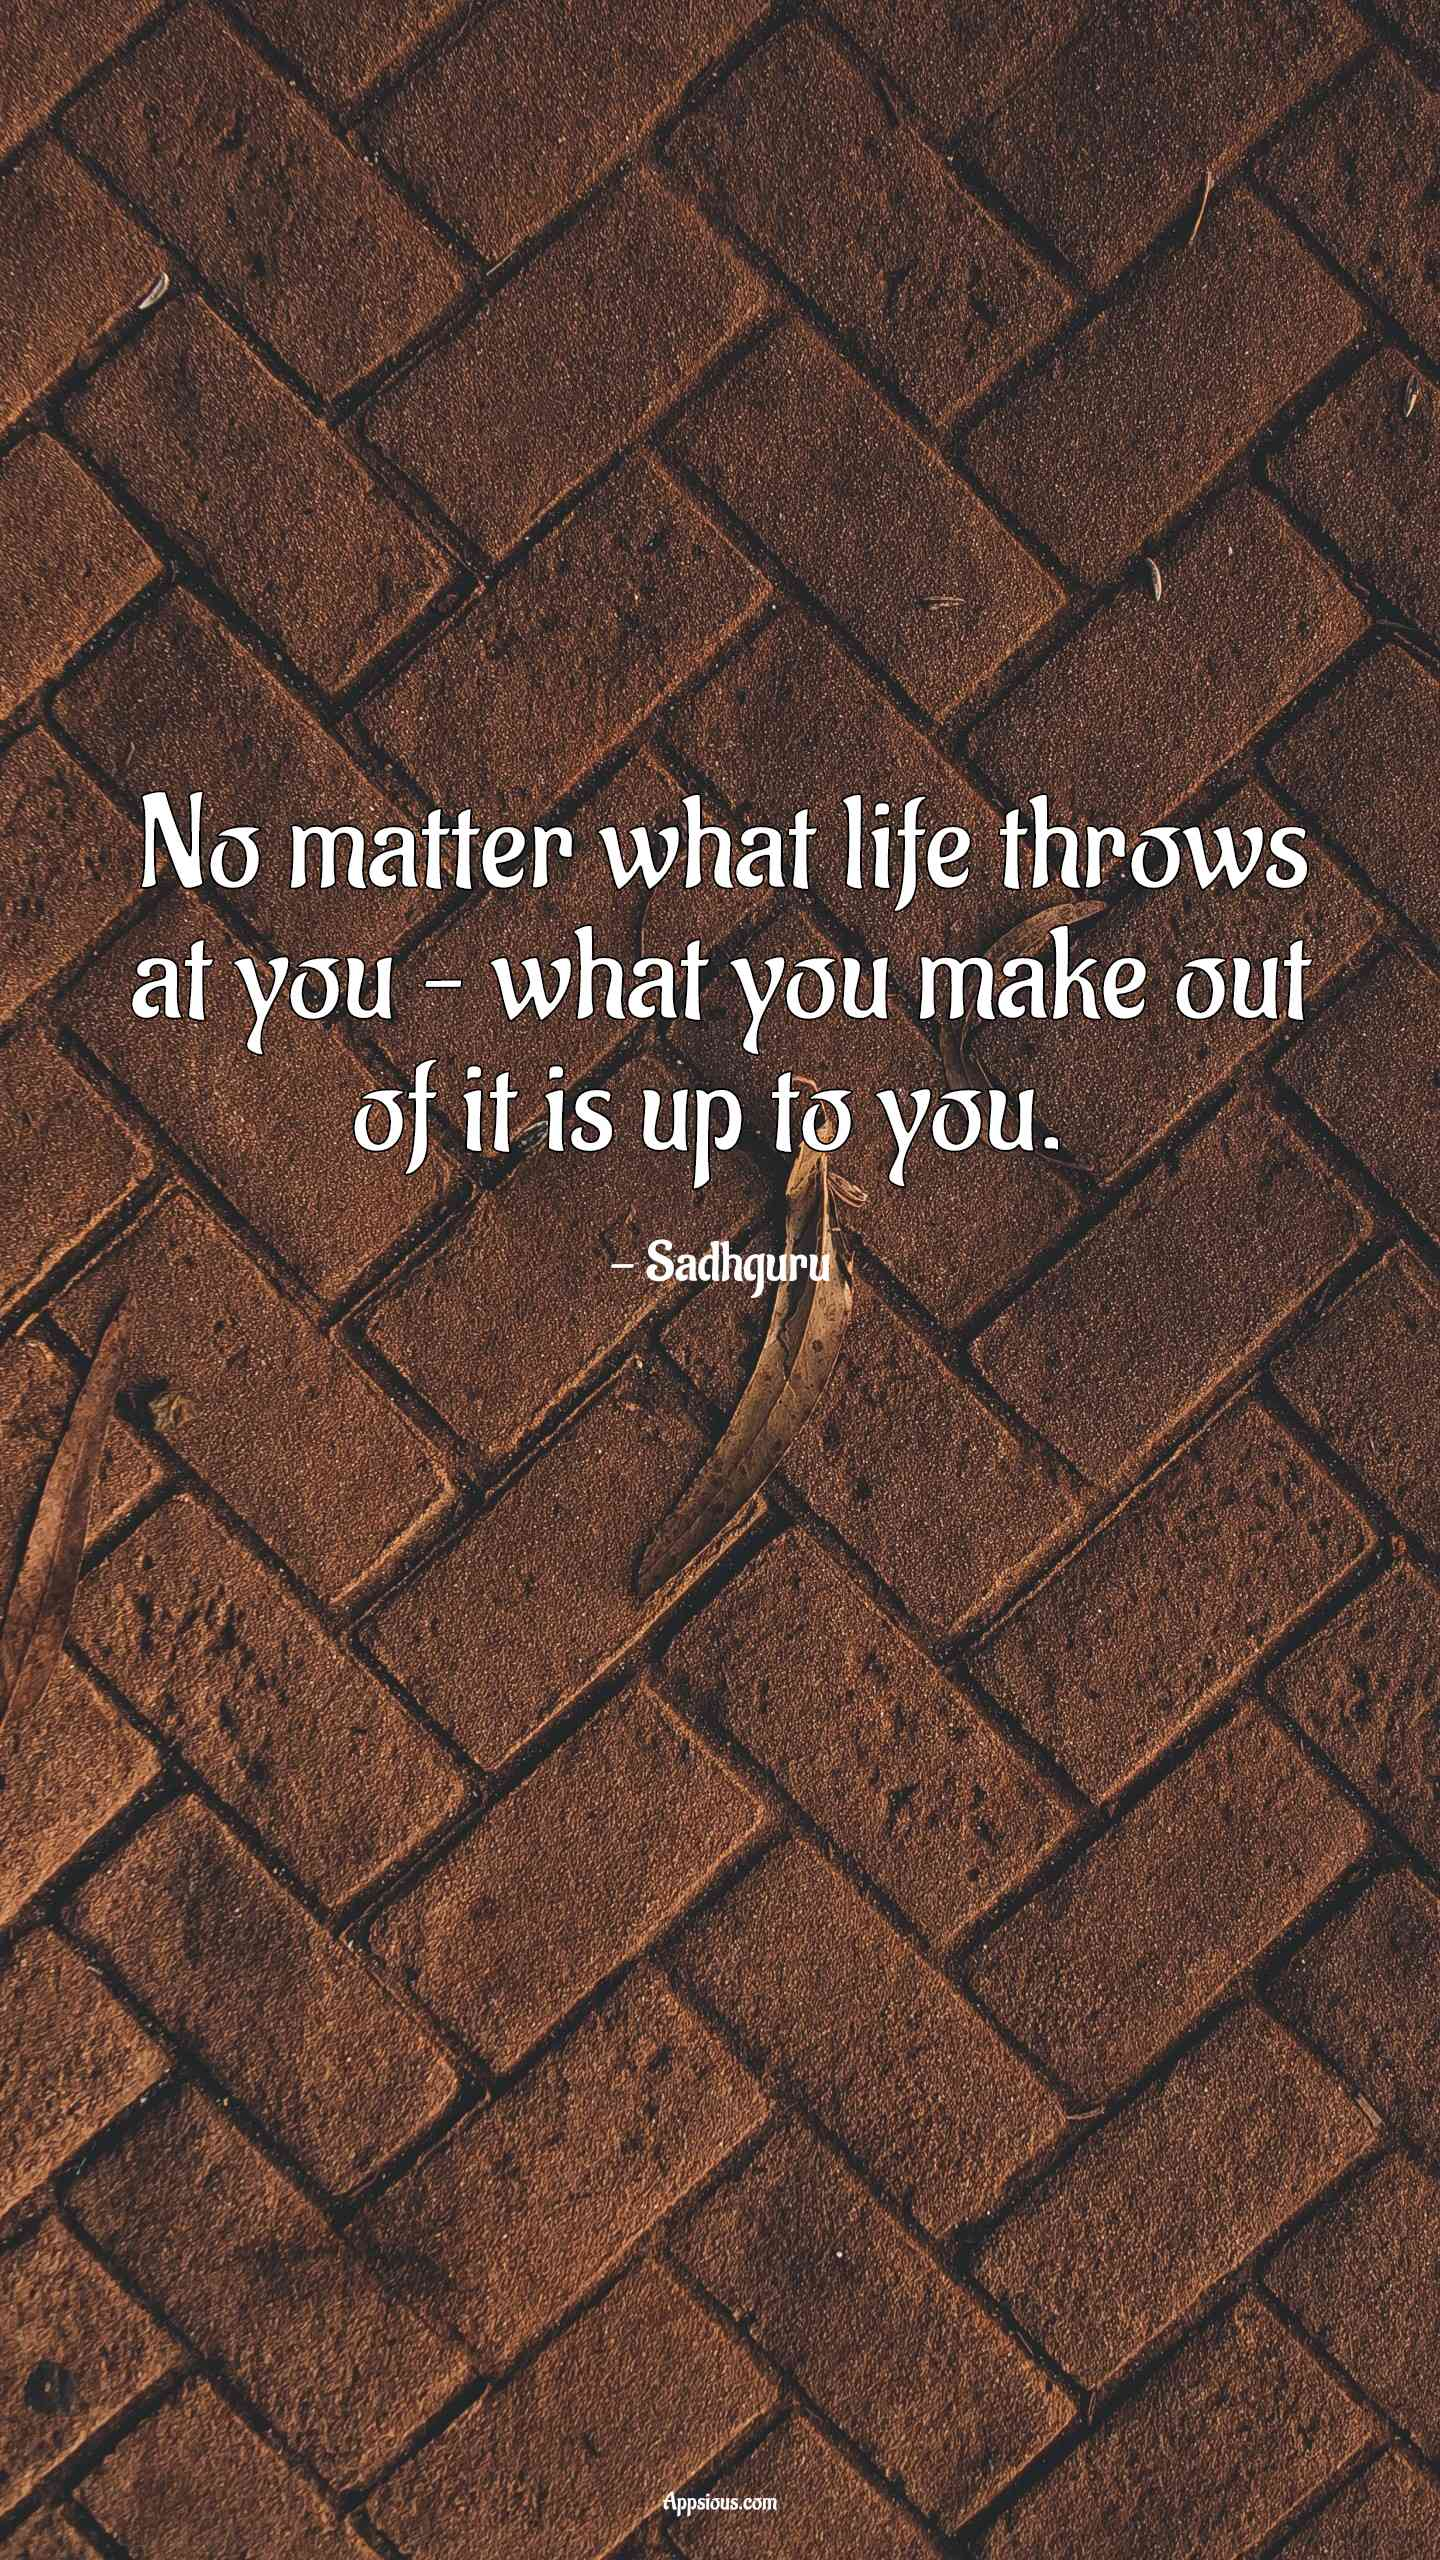 No matter what life throws at you – what you make out of it is up to you.